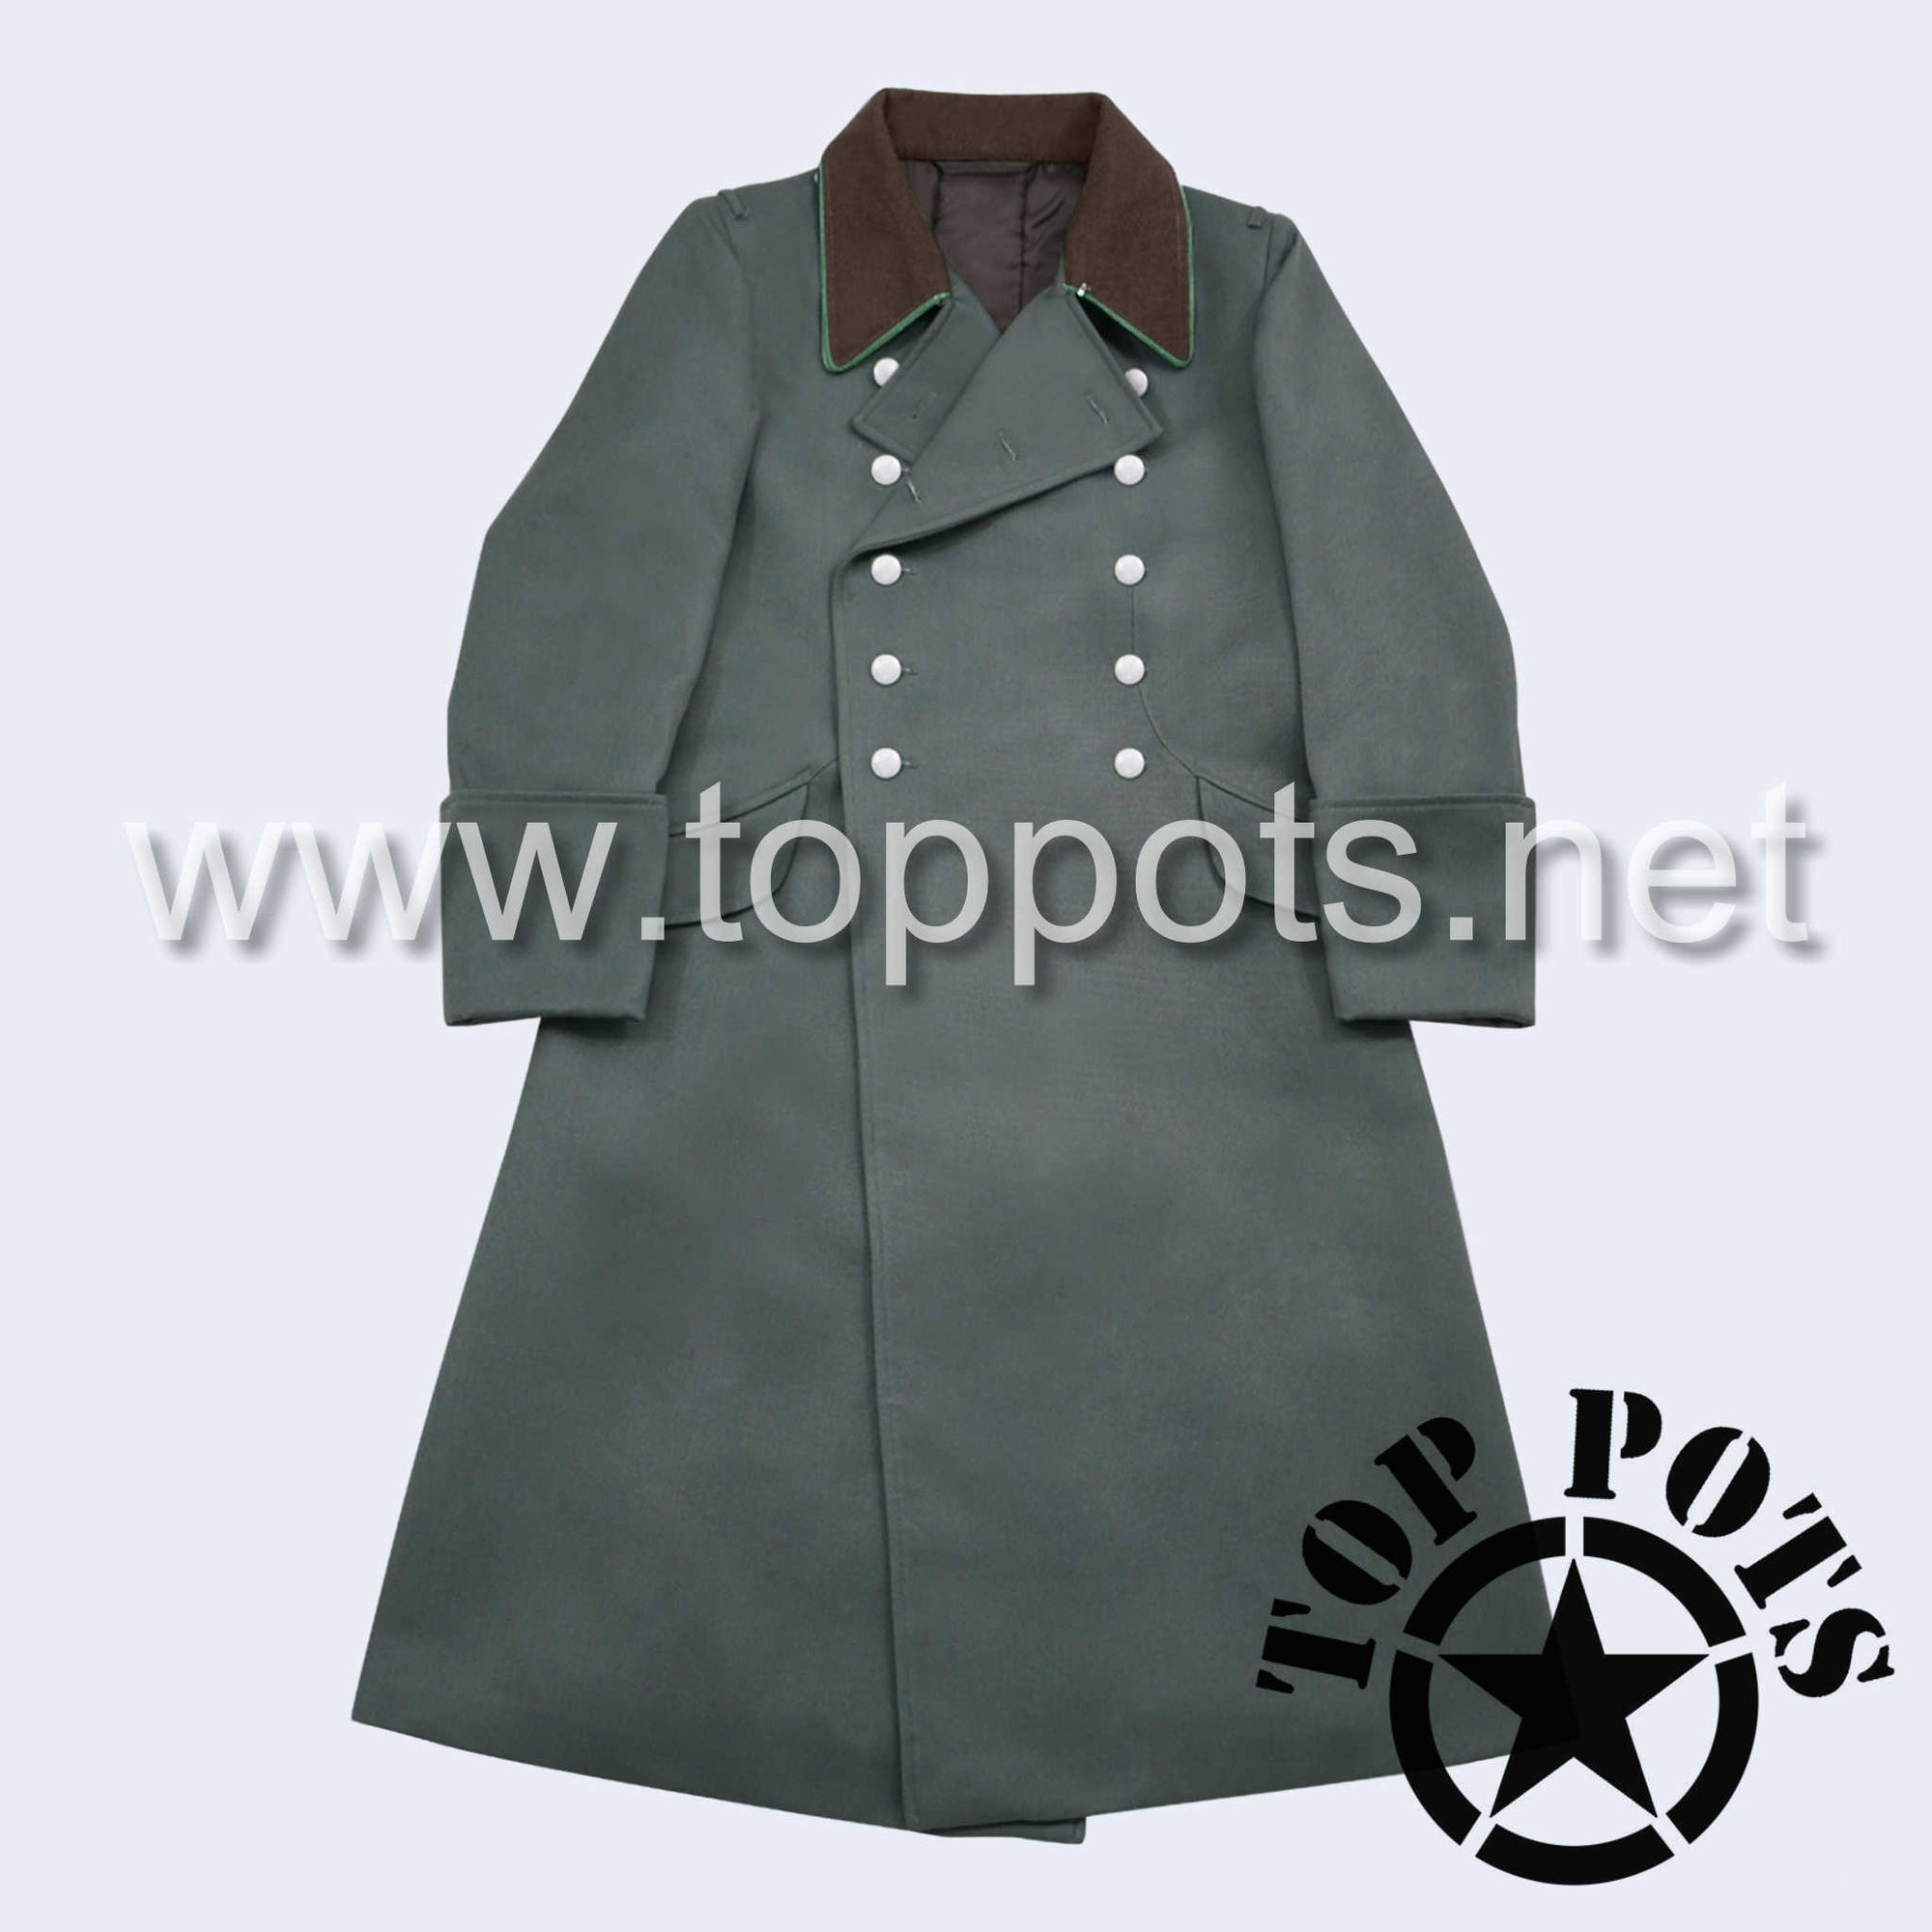 WWII German Army Waffenn SS Police Uniform Overcoat Greatcoat Winter Jacket Field Grey Gabardine - Officer